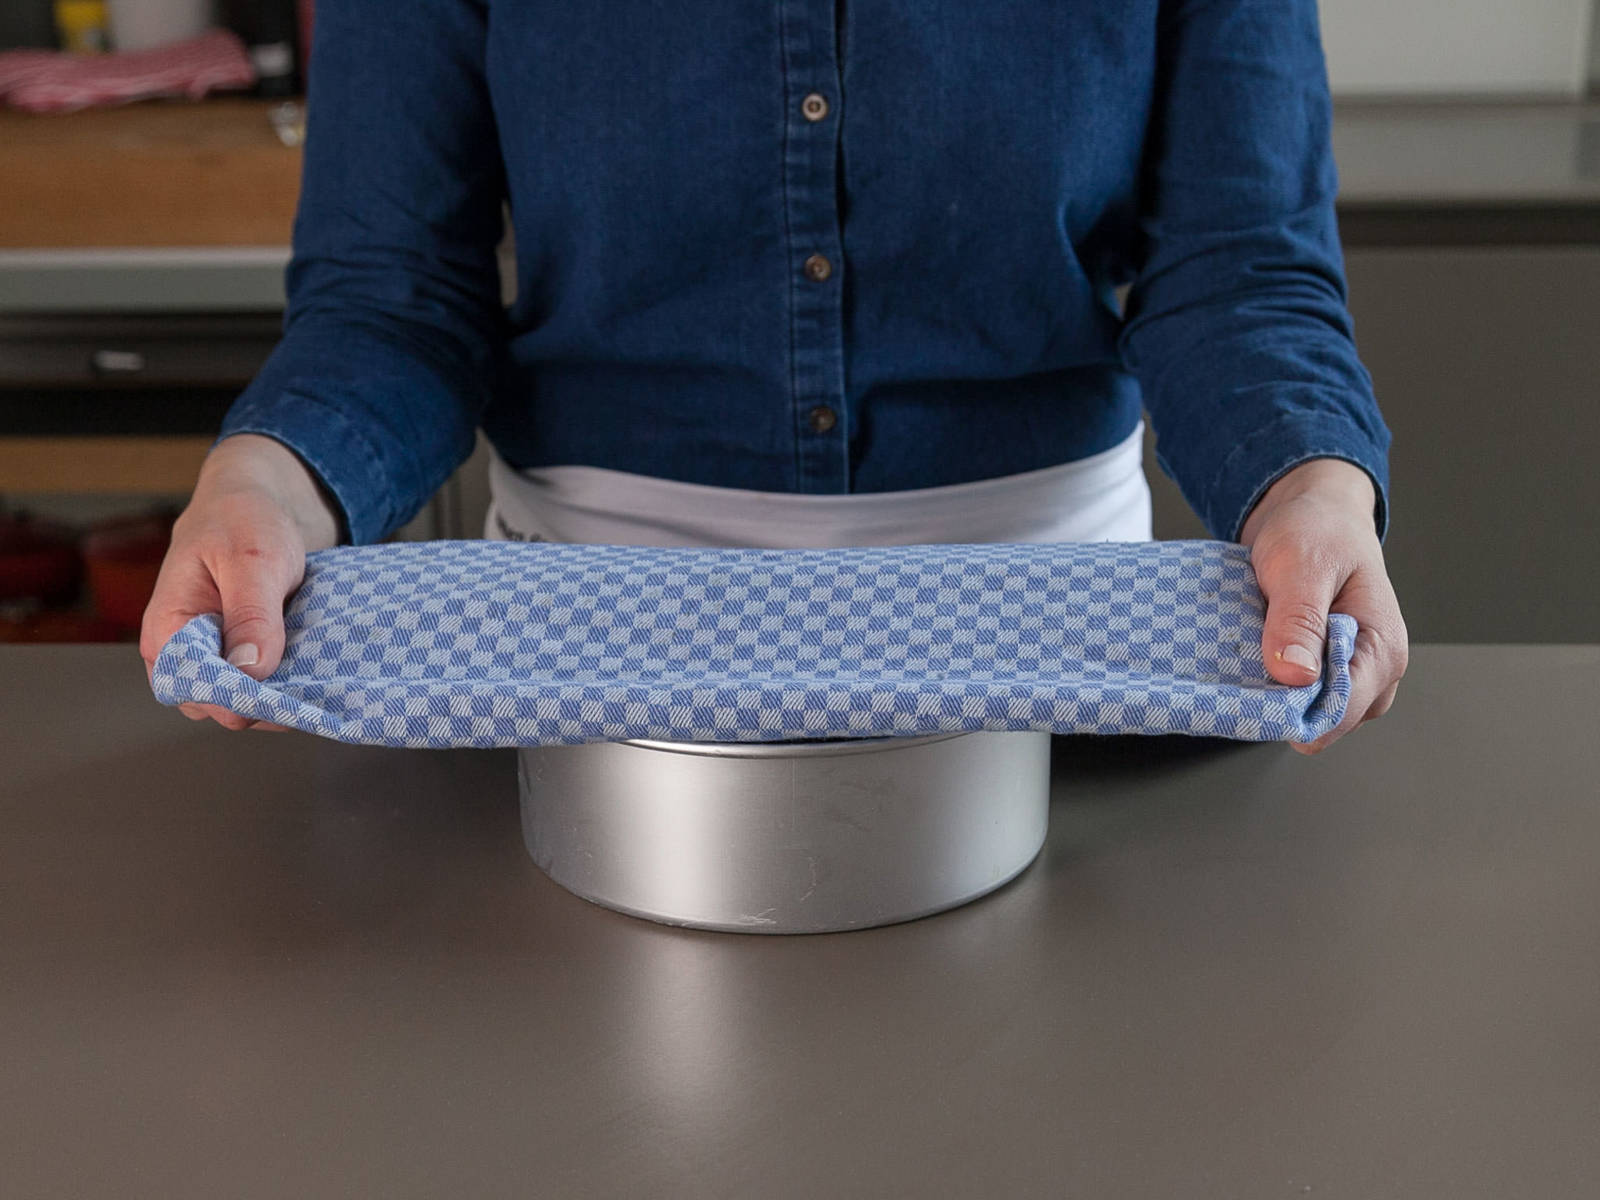 Cover pan with a kitchen towel. Let rise in a warm place for approx. 1 hr., or until dough is doubled in size. Preheat oven to 175°C/350°F.